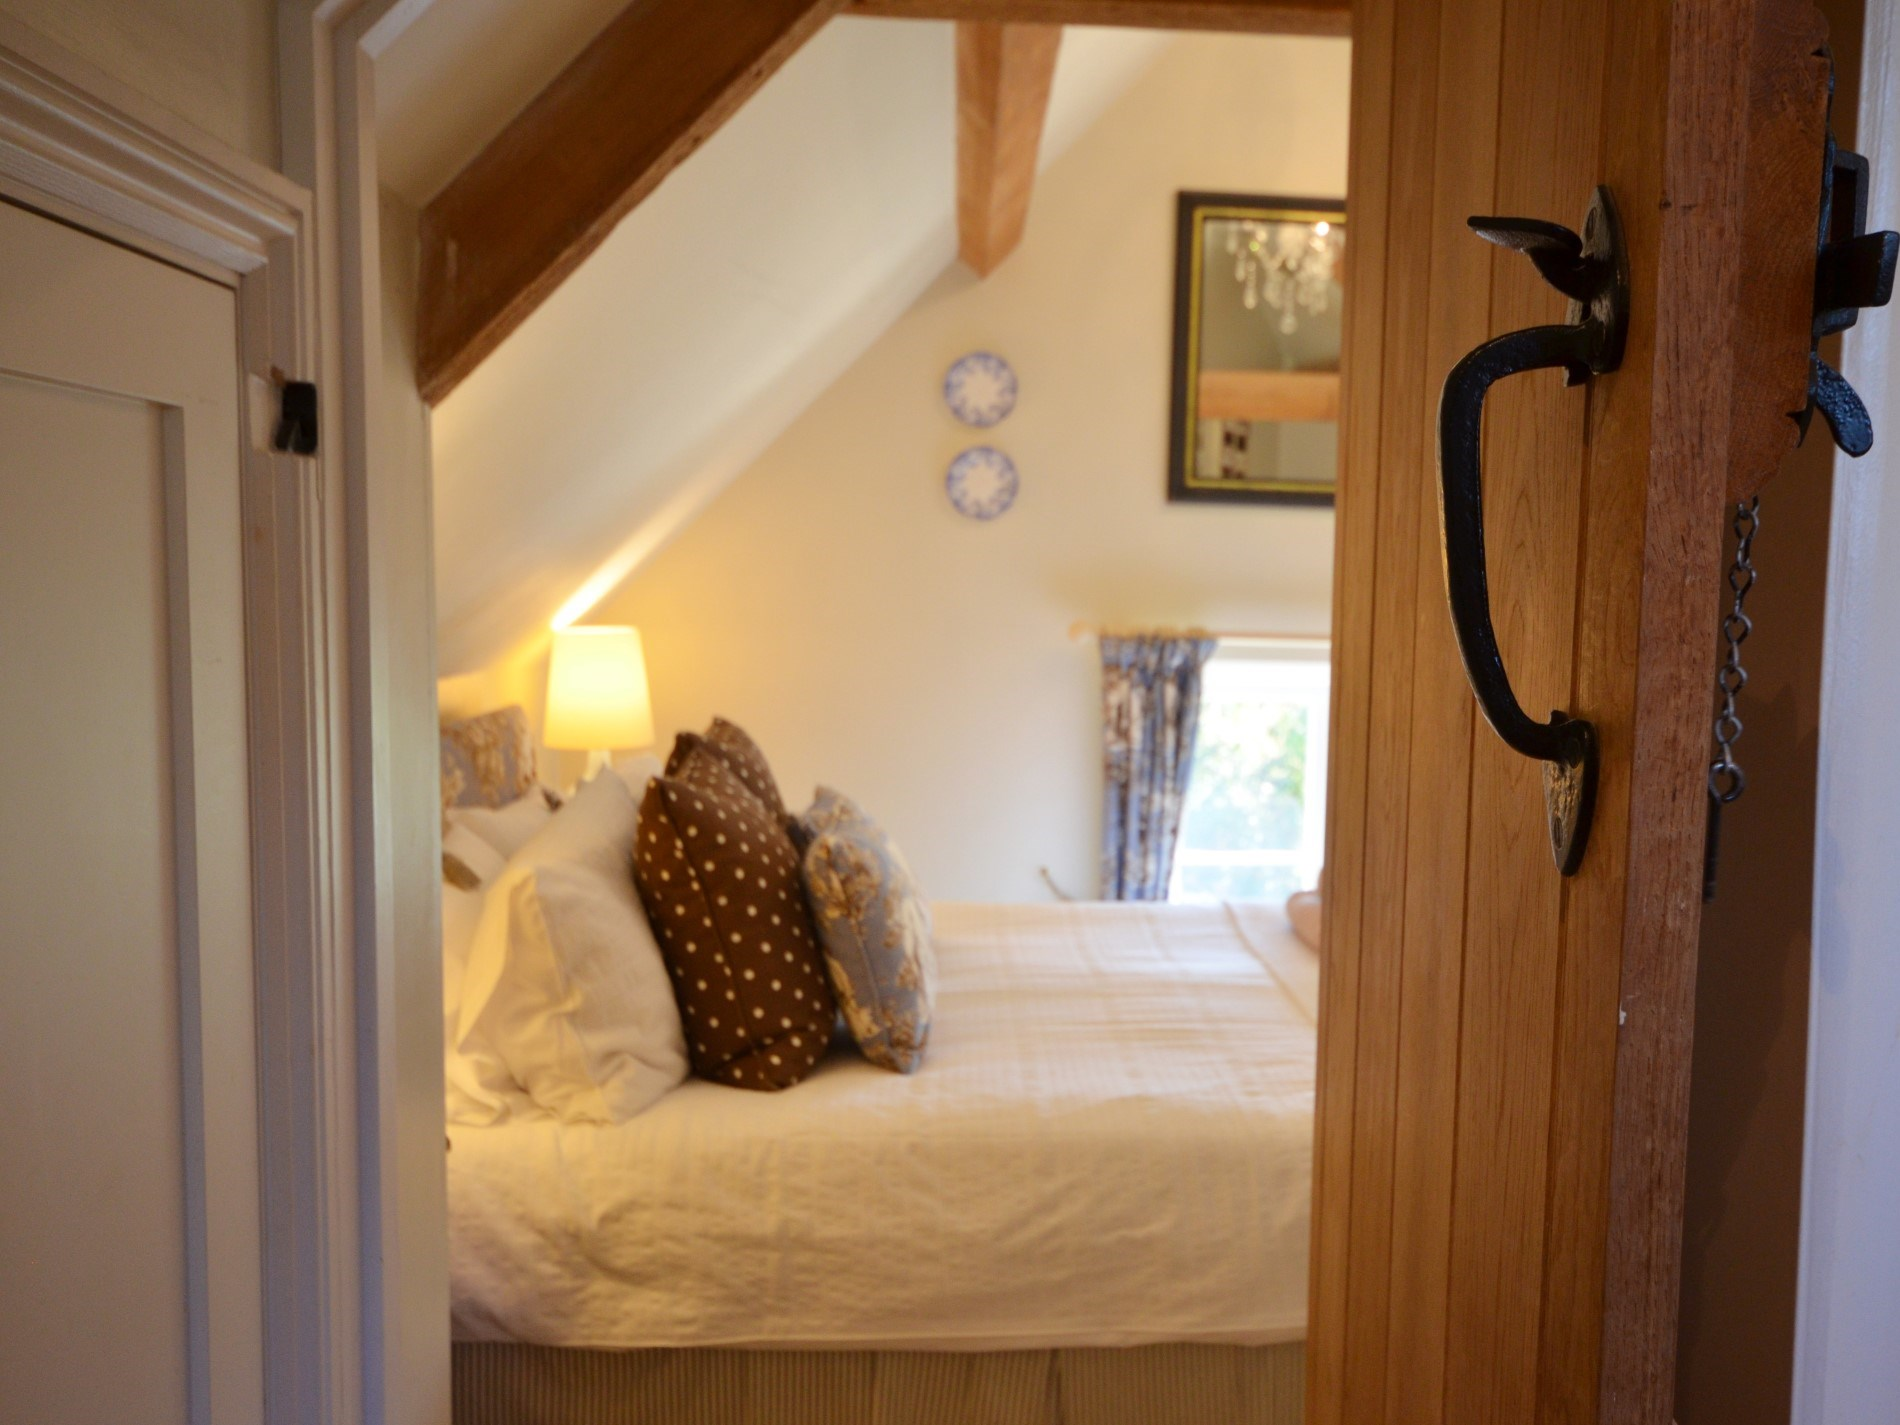 View to the bedroom from the en-suite